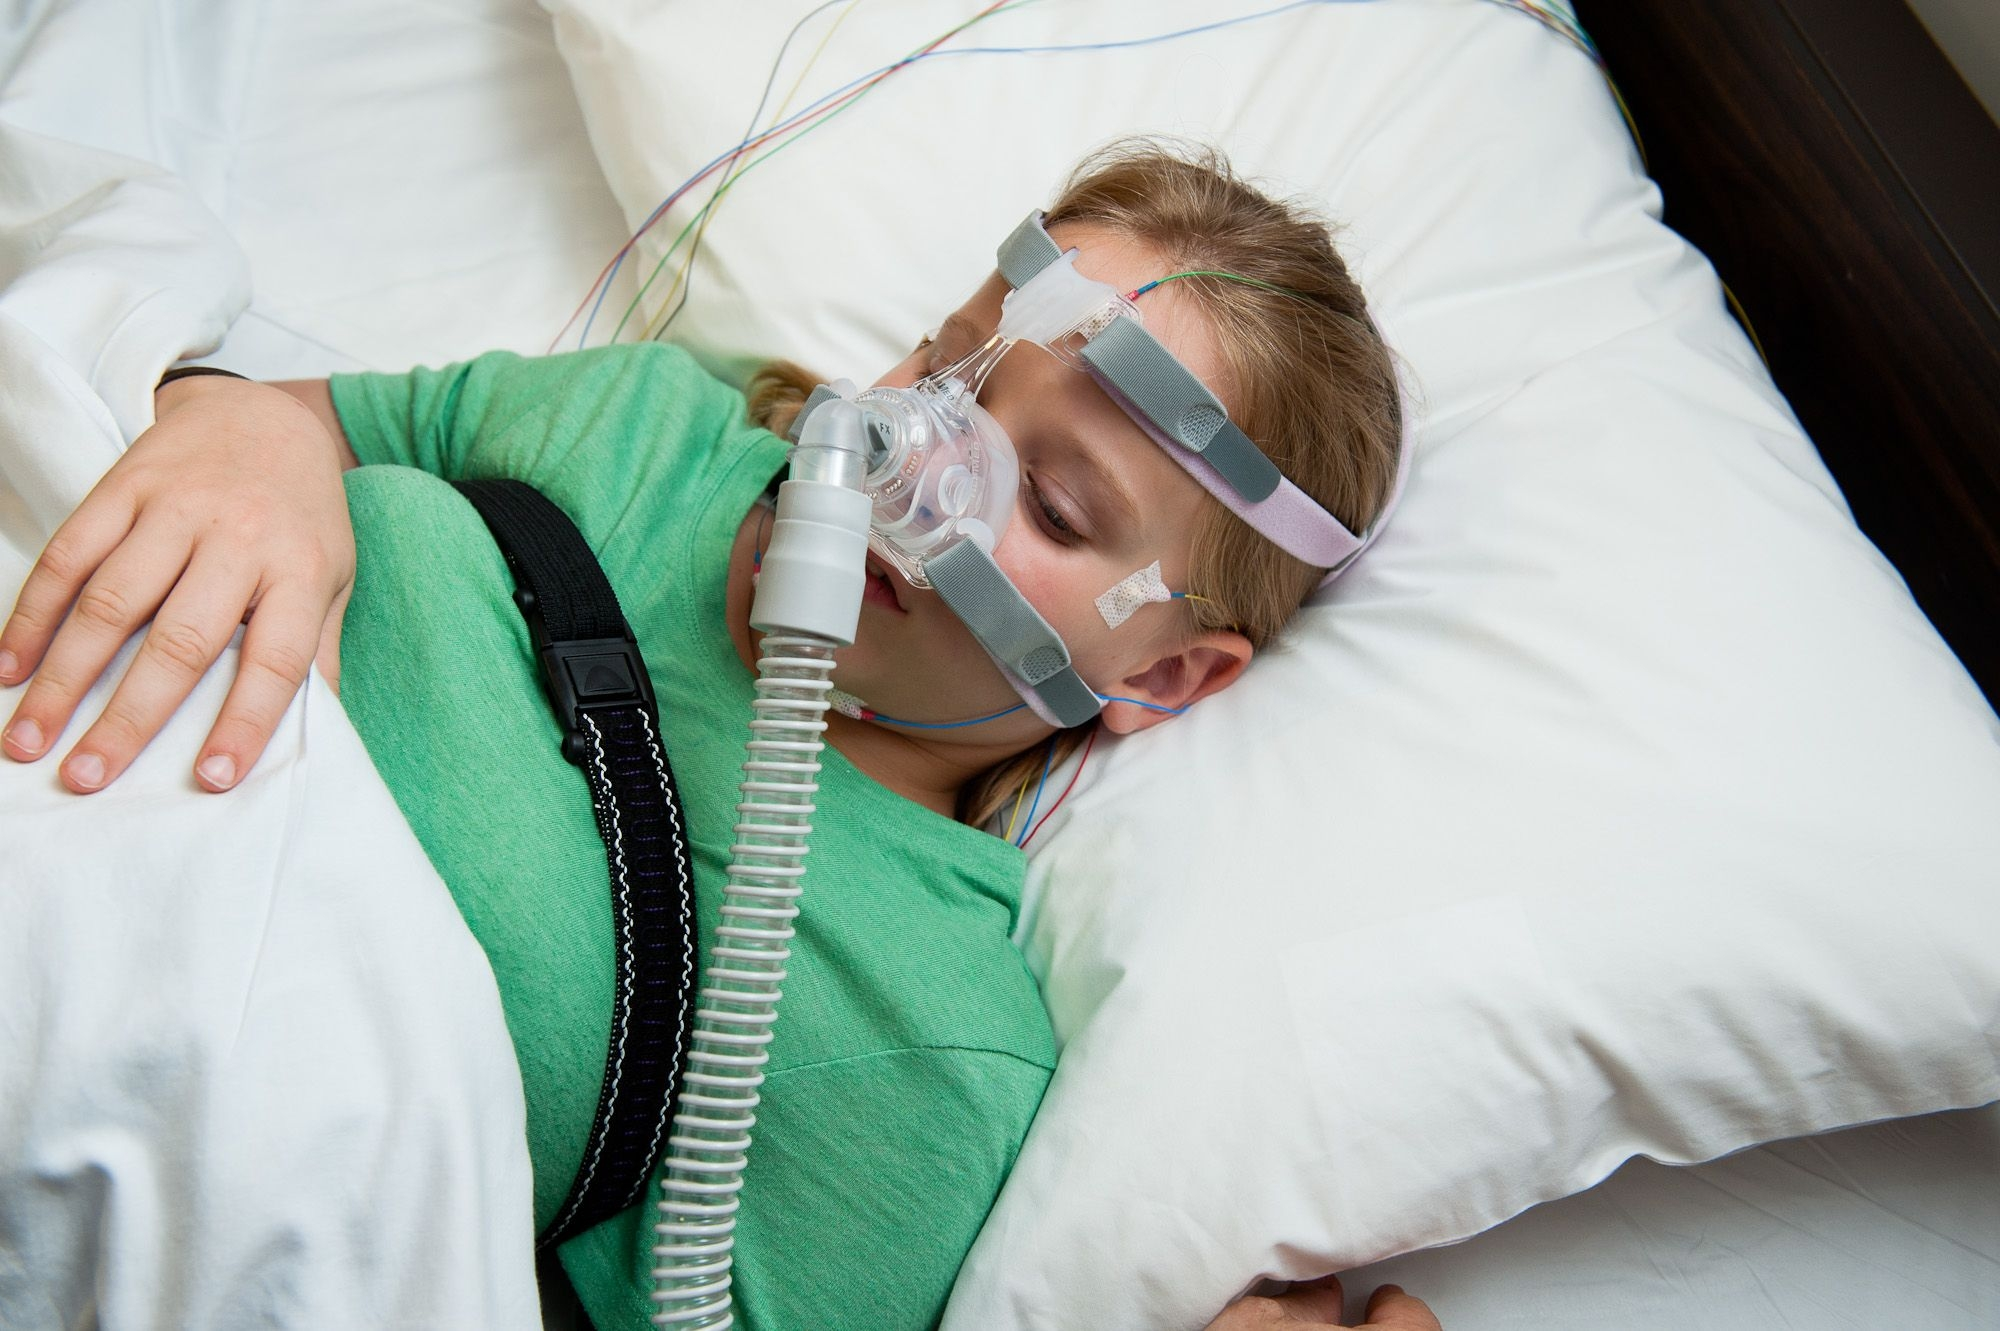 A Weill Cornell Medicine pediatric patient using a CPAP machine